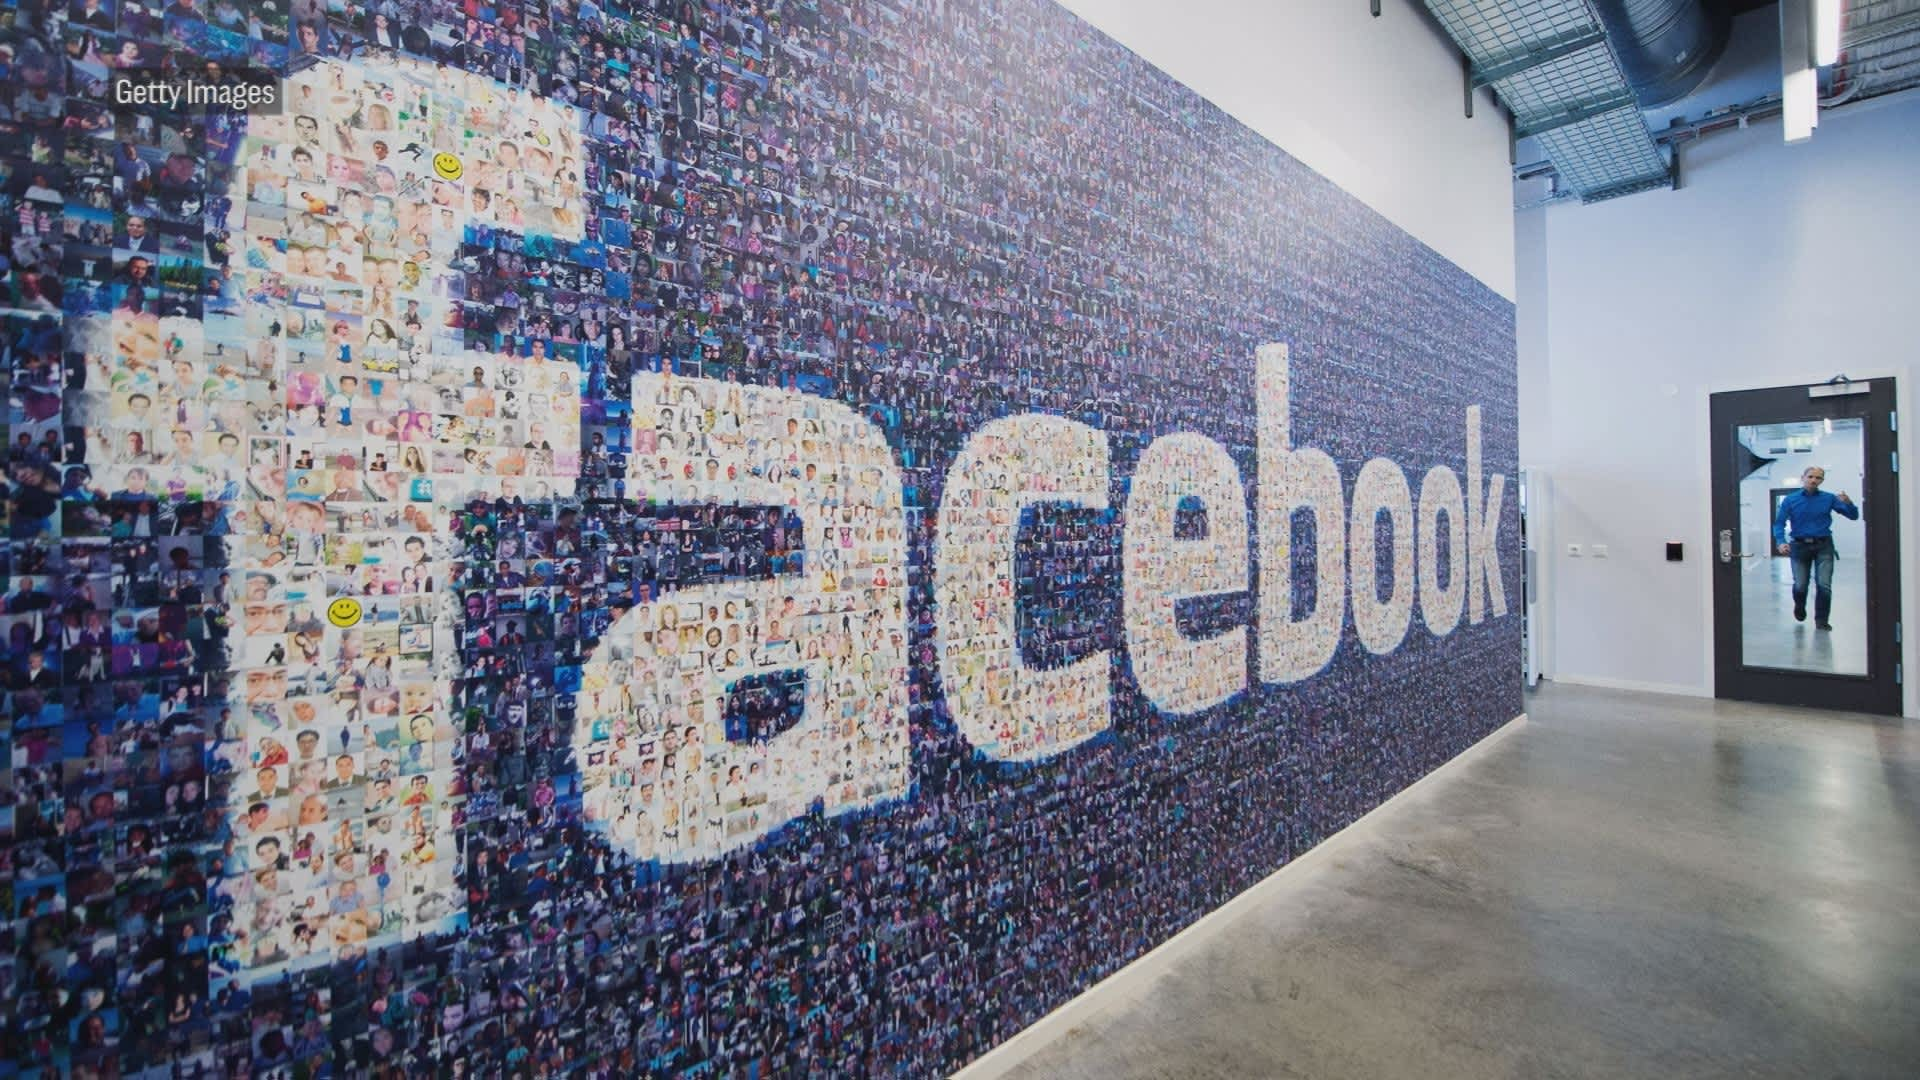 Facebook sent a doctor on a secret mission to ask hospitals to share  patient data